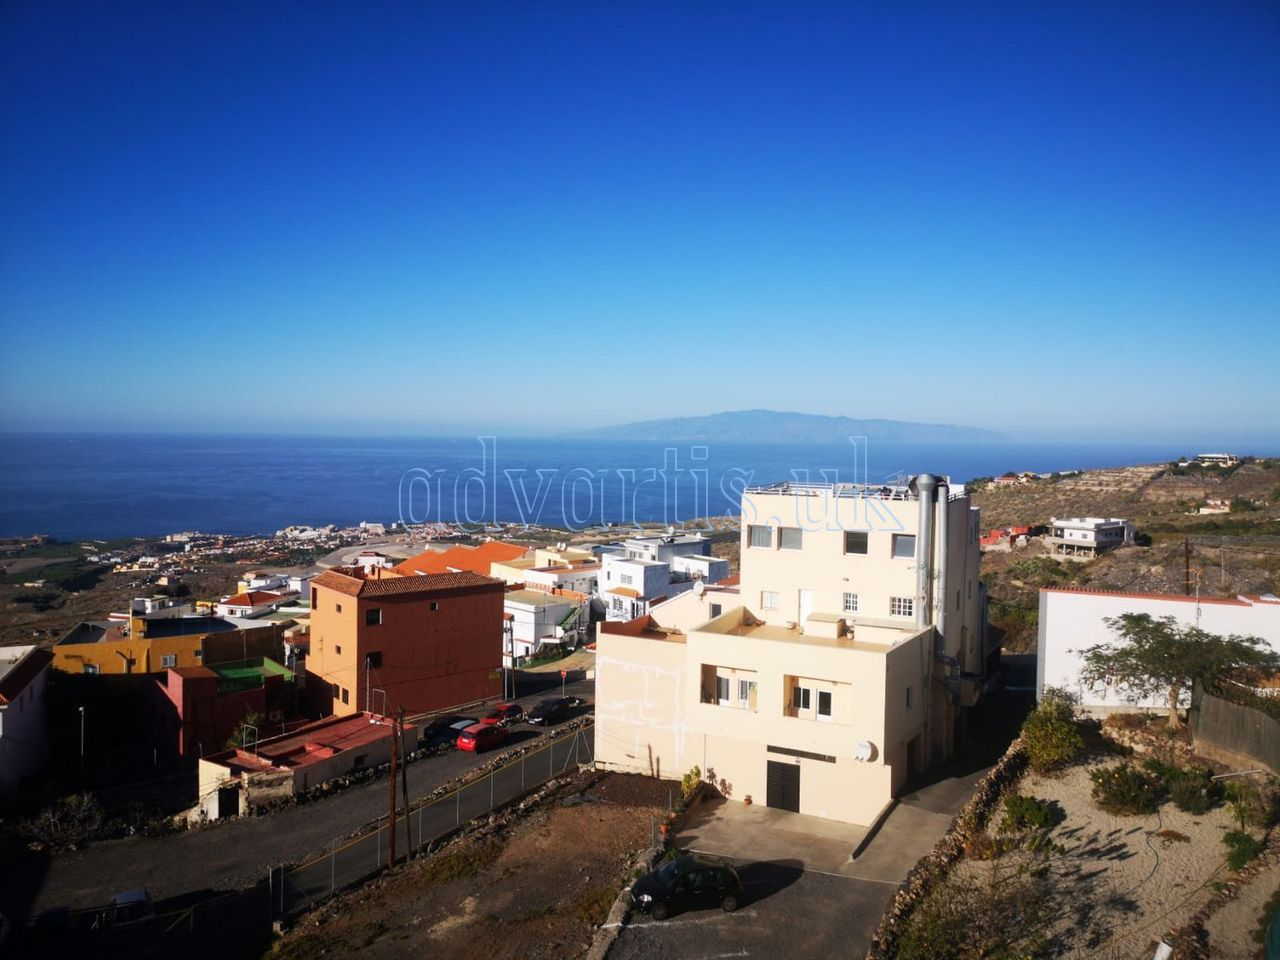 Duplex apartment for sale in Los Menores, Adeje, Tenerife €164,900